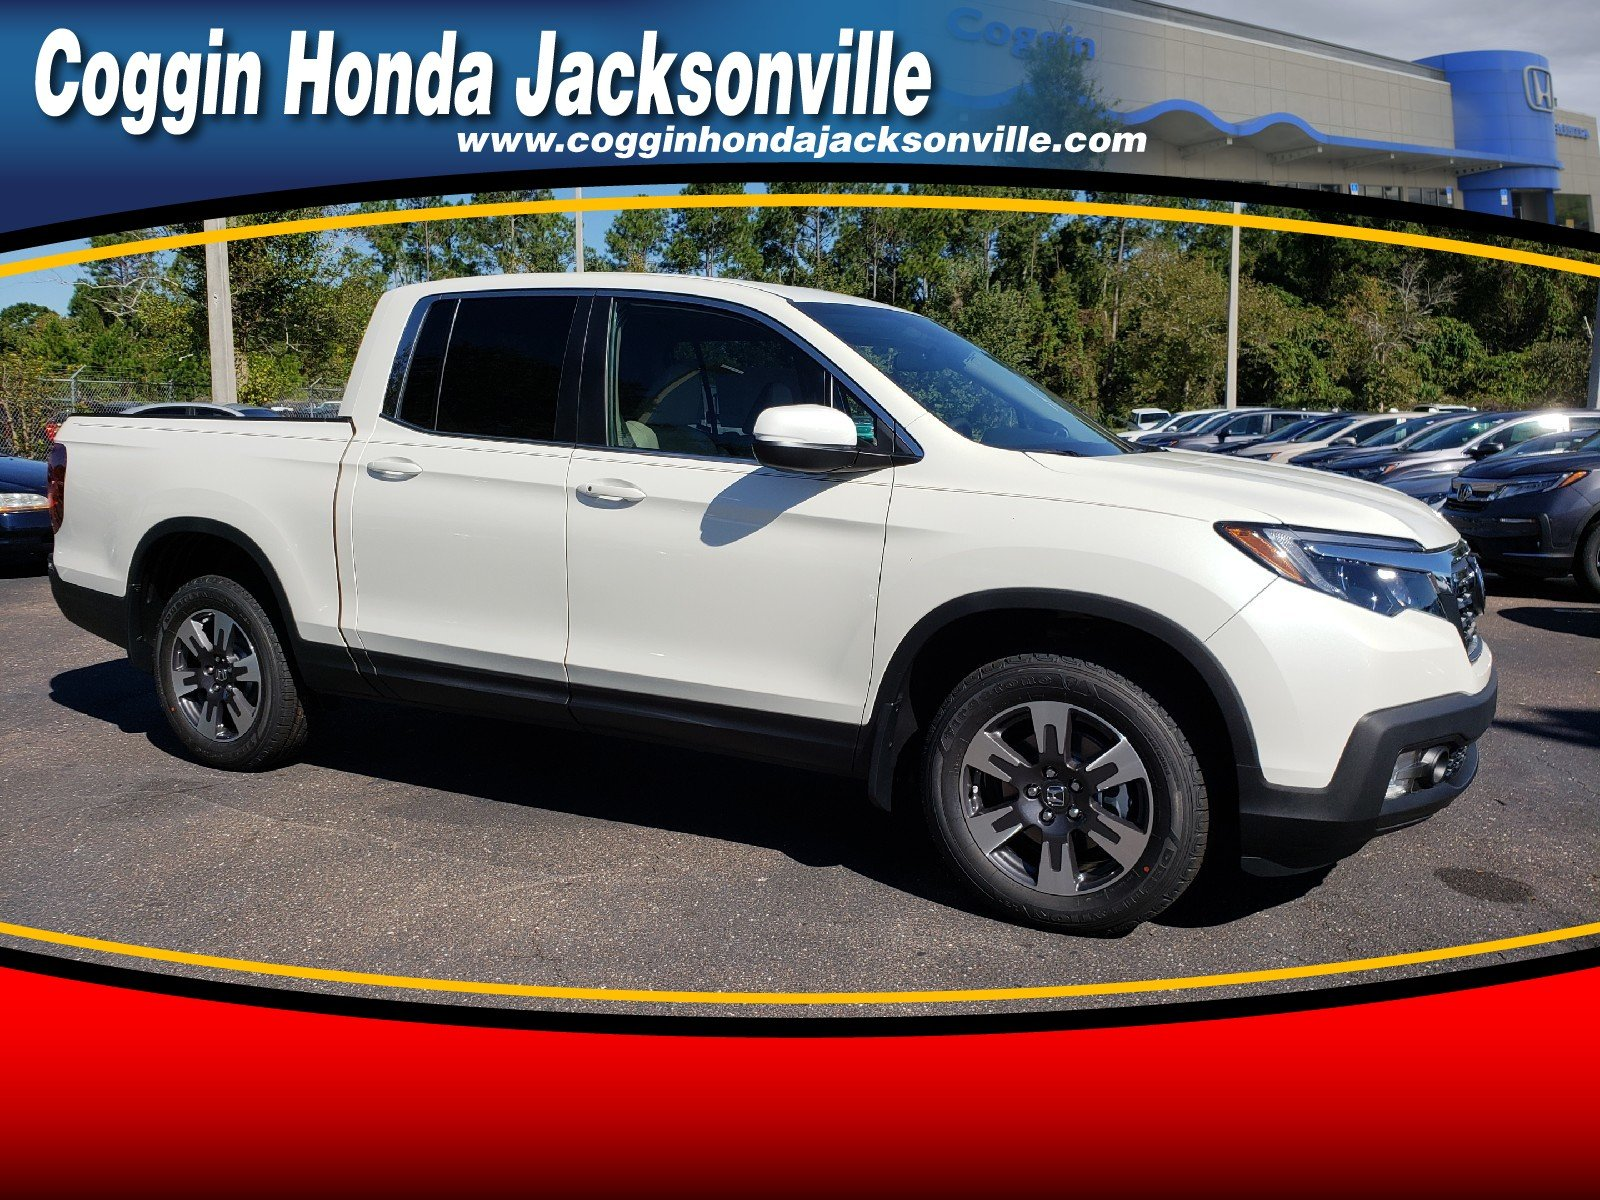 Coggin Honda Jacksonville New Car Specials | New Car Deals in Jacksonville, FL